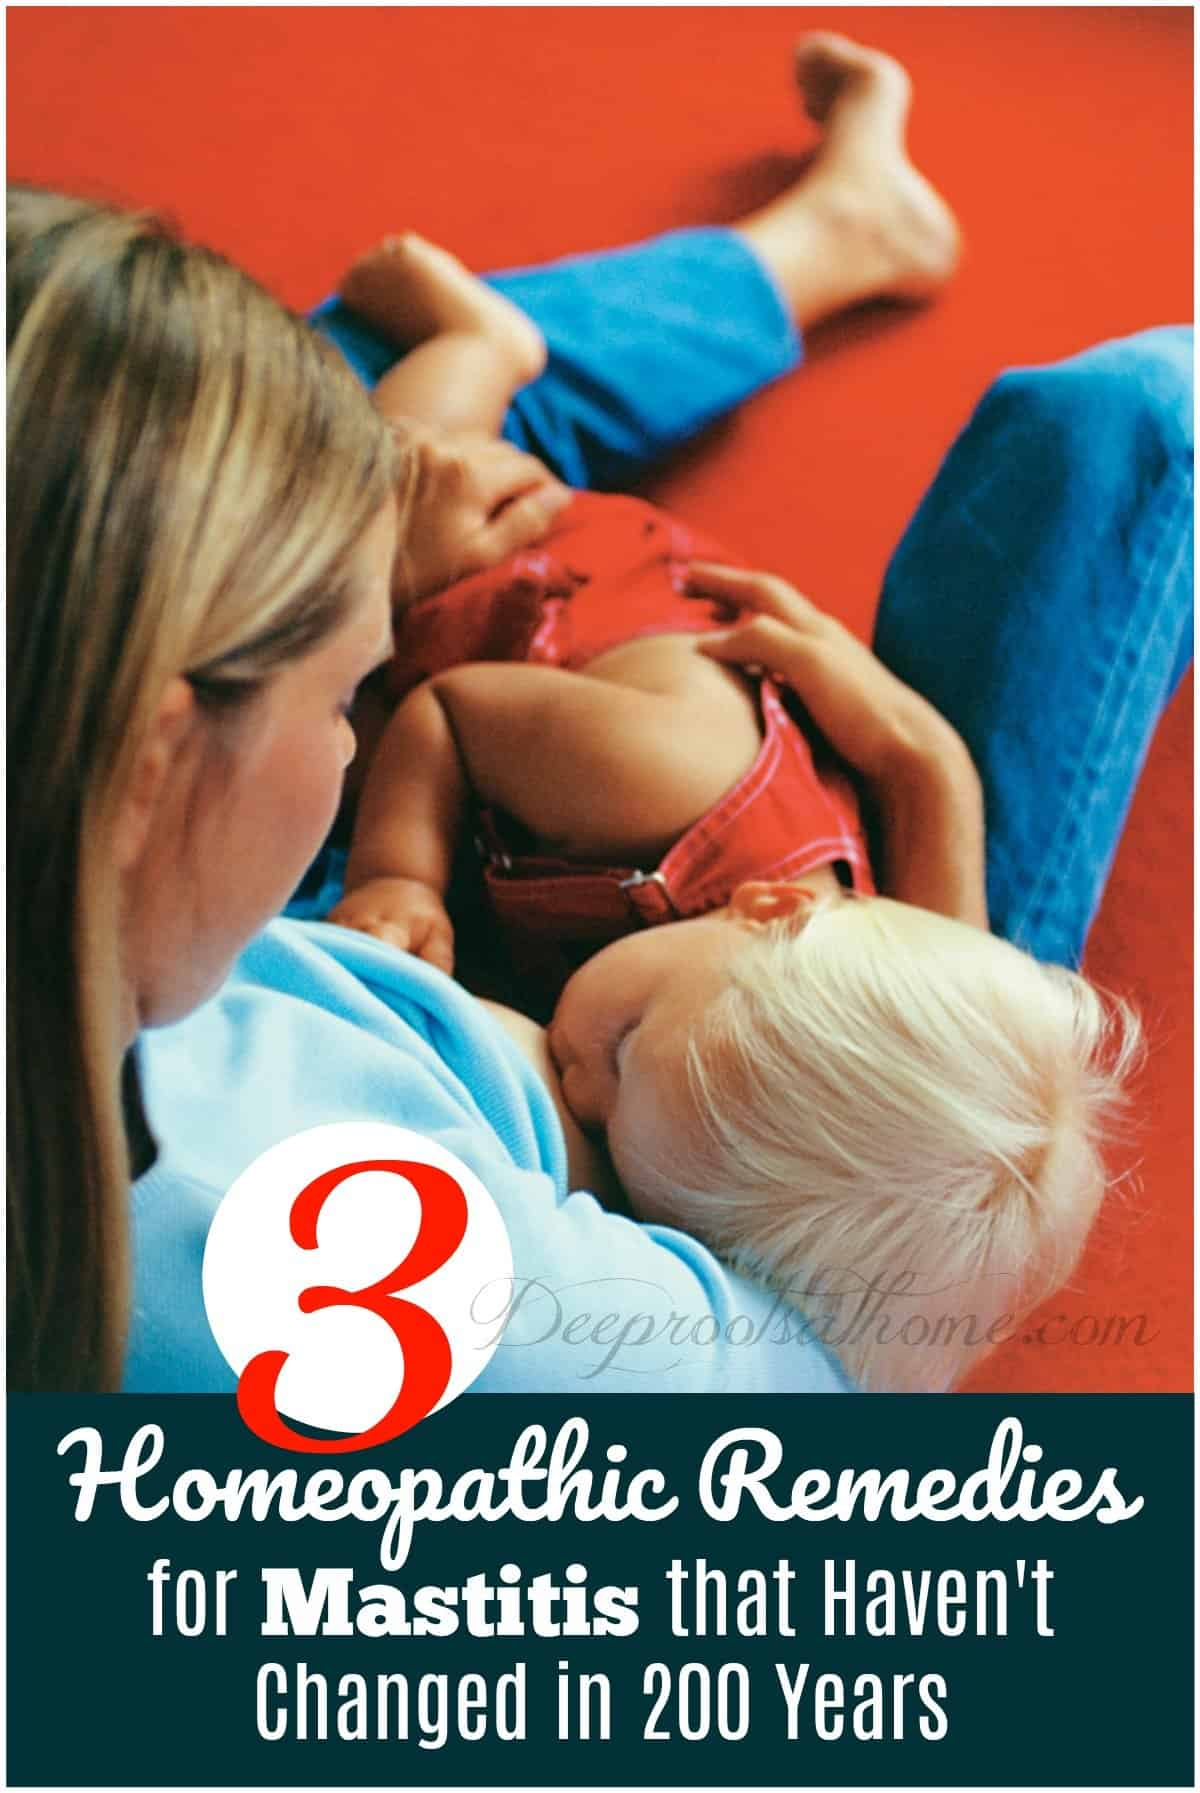 3 Homeopathic Remedies for Mastitis that Haven't Changed in 200 Years.